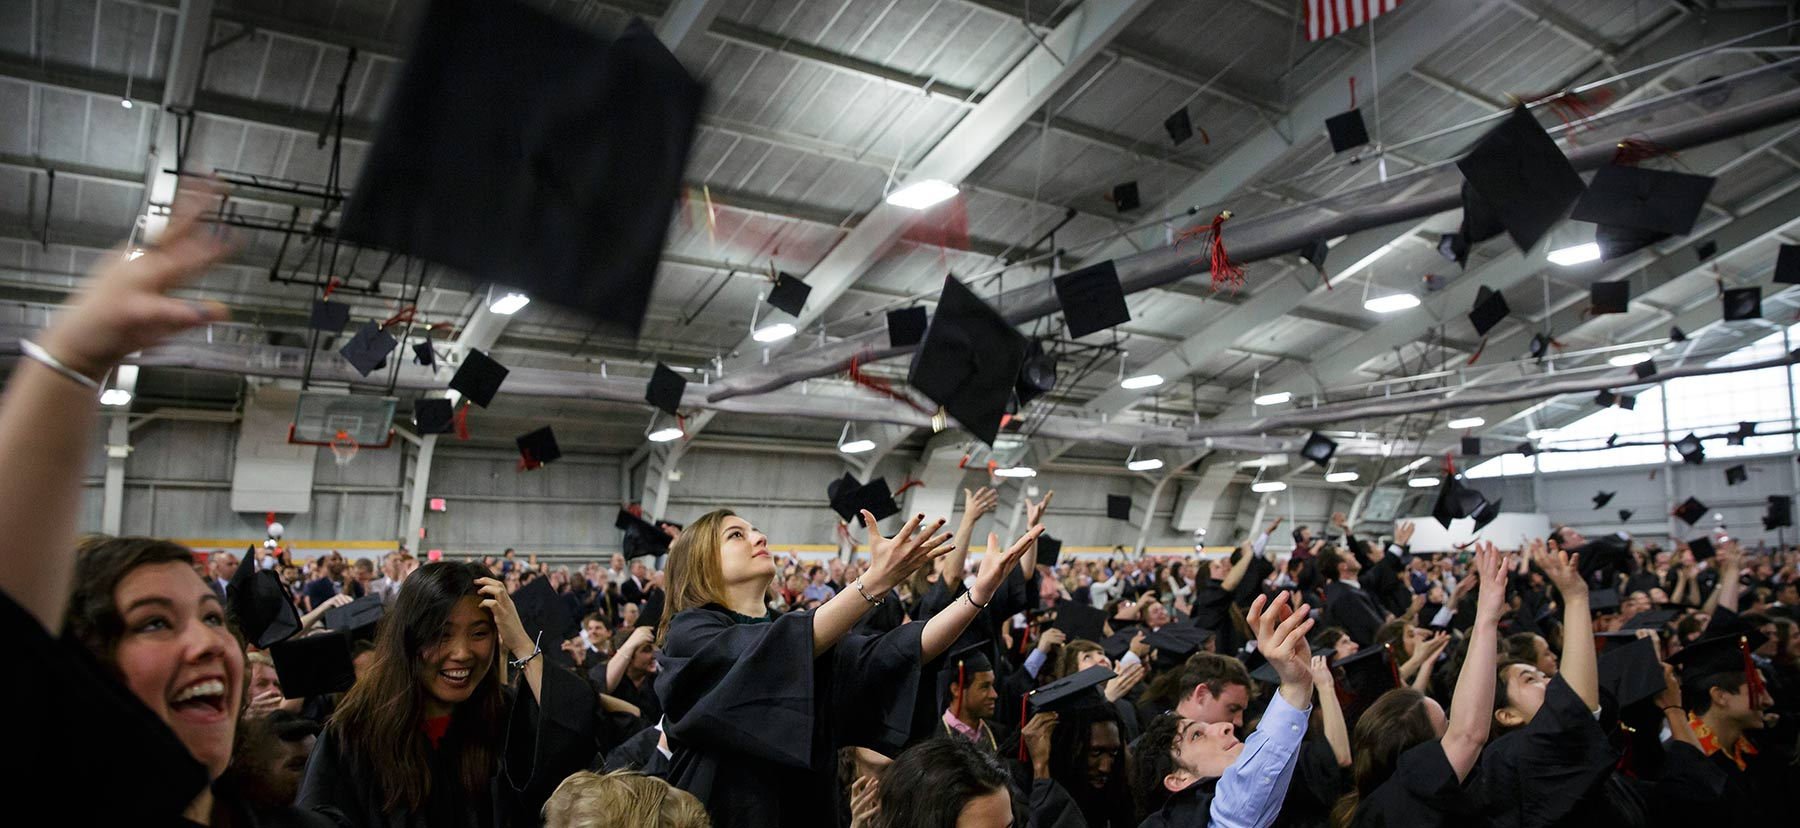 Graduates throw caps in the air